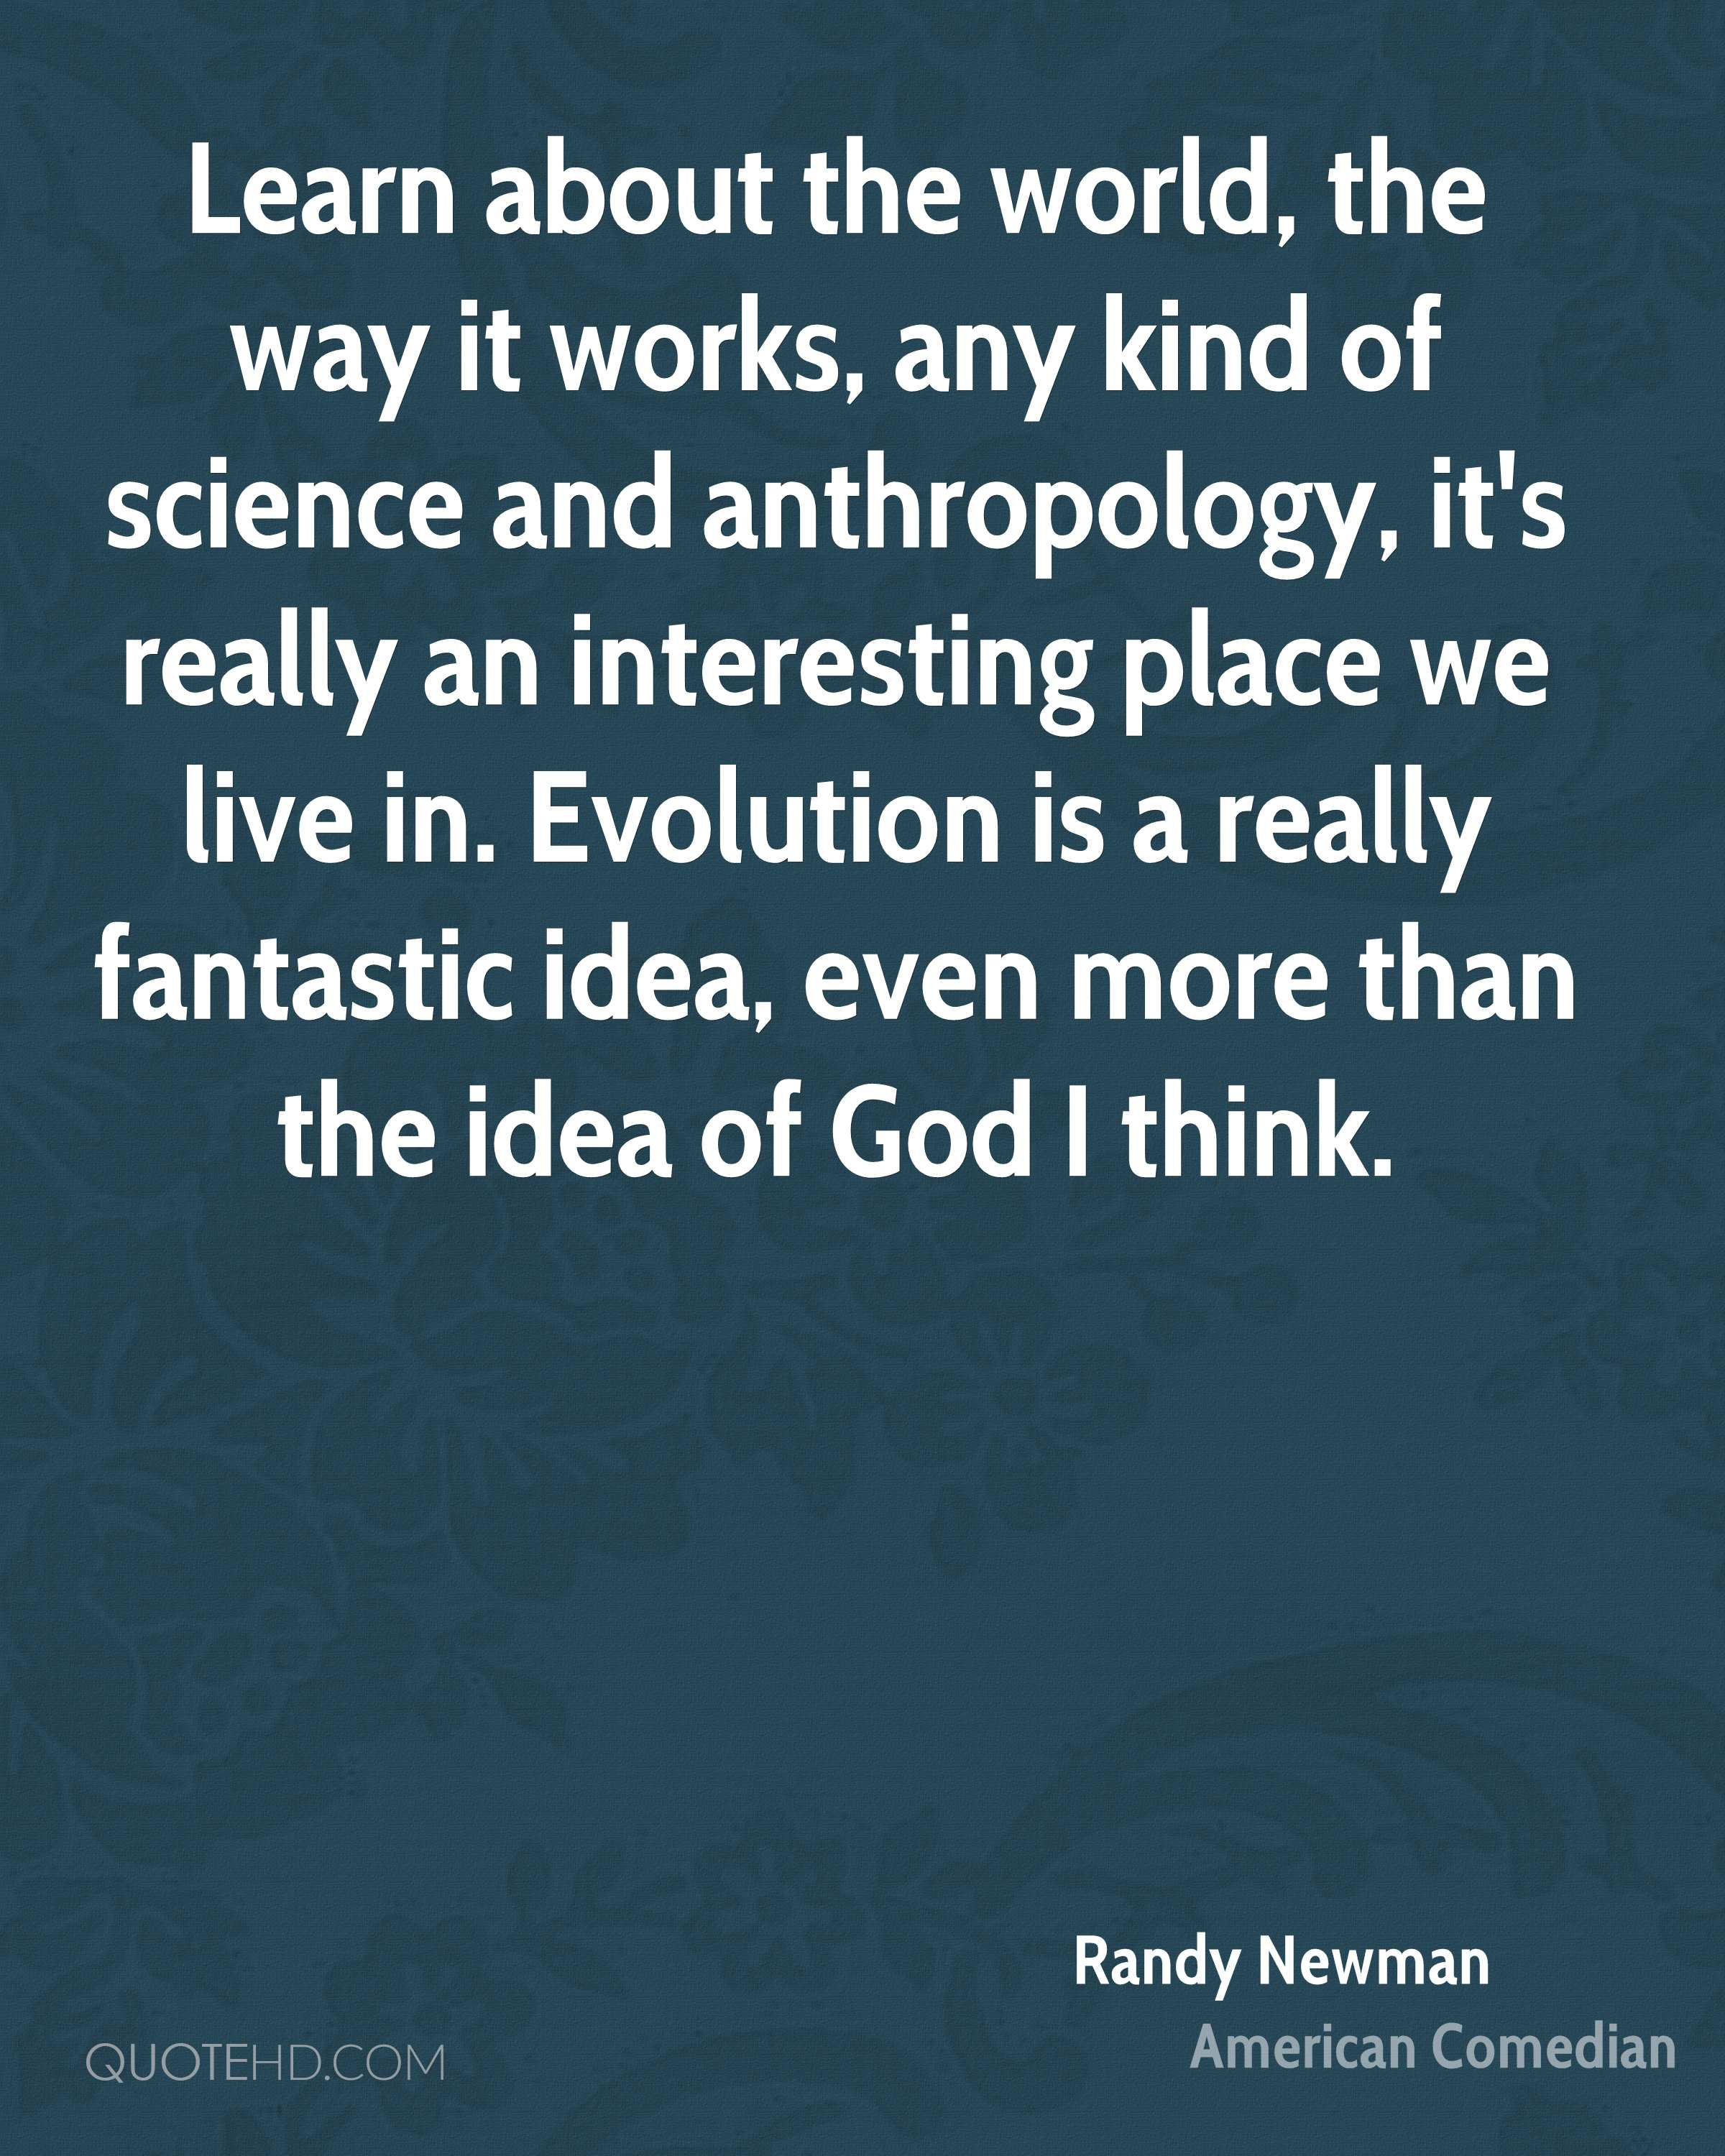 Learn about the world, the way it works, any kind of science and anthropology, it's really an interesting place we live in. Evolution is a really fantastic idea, even more than the idea of God I think.